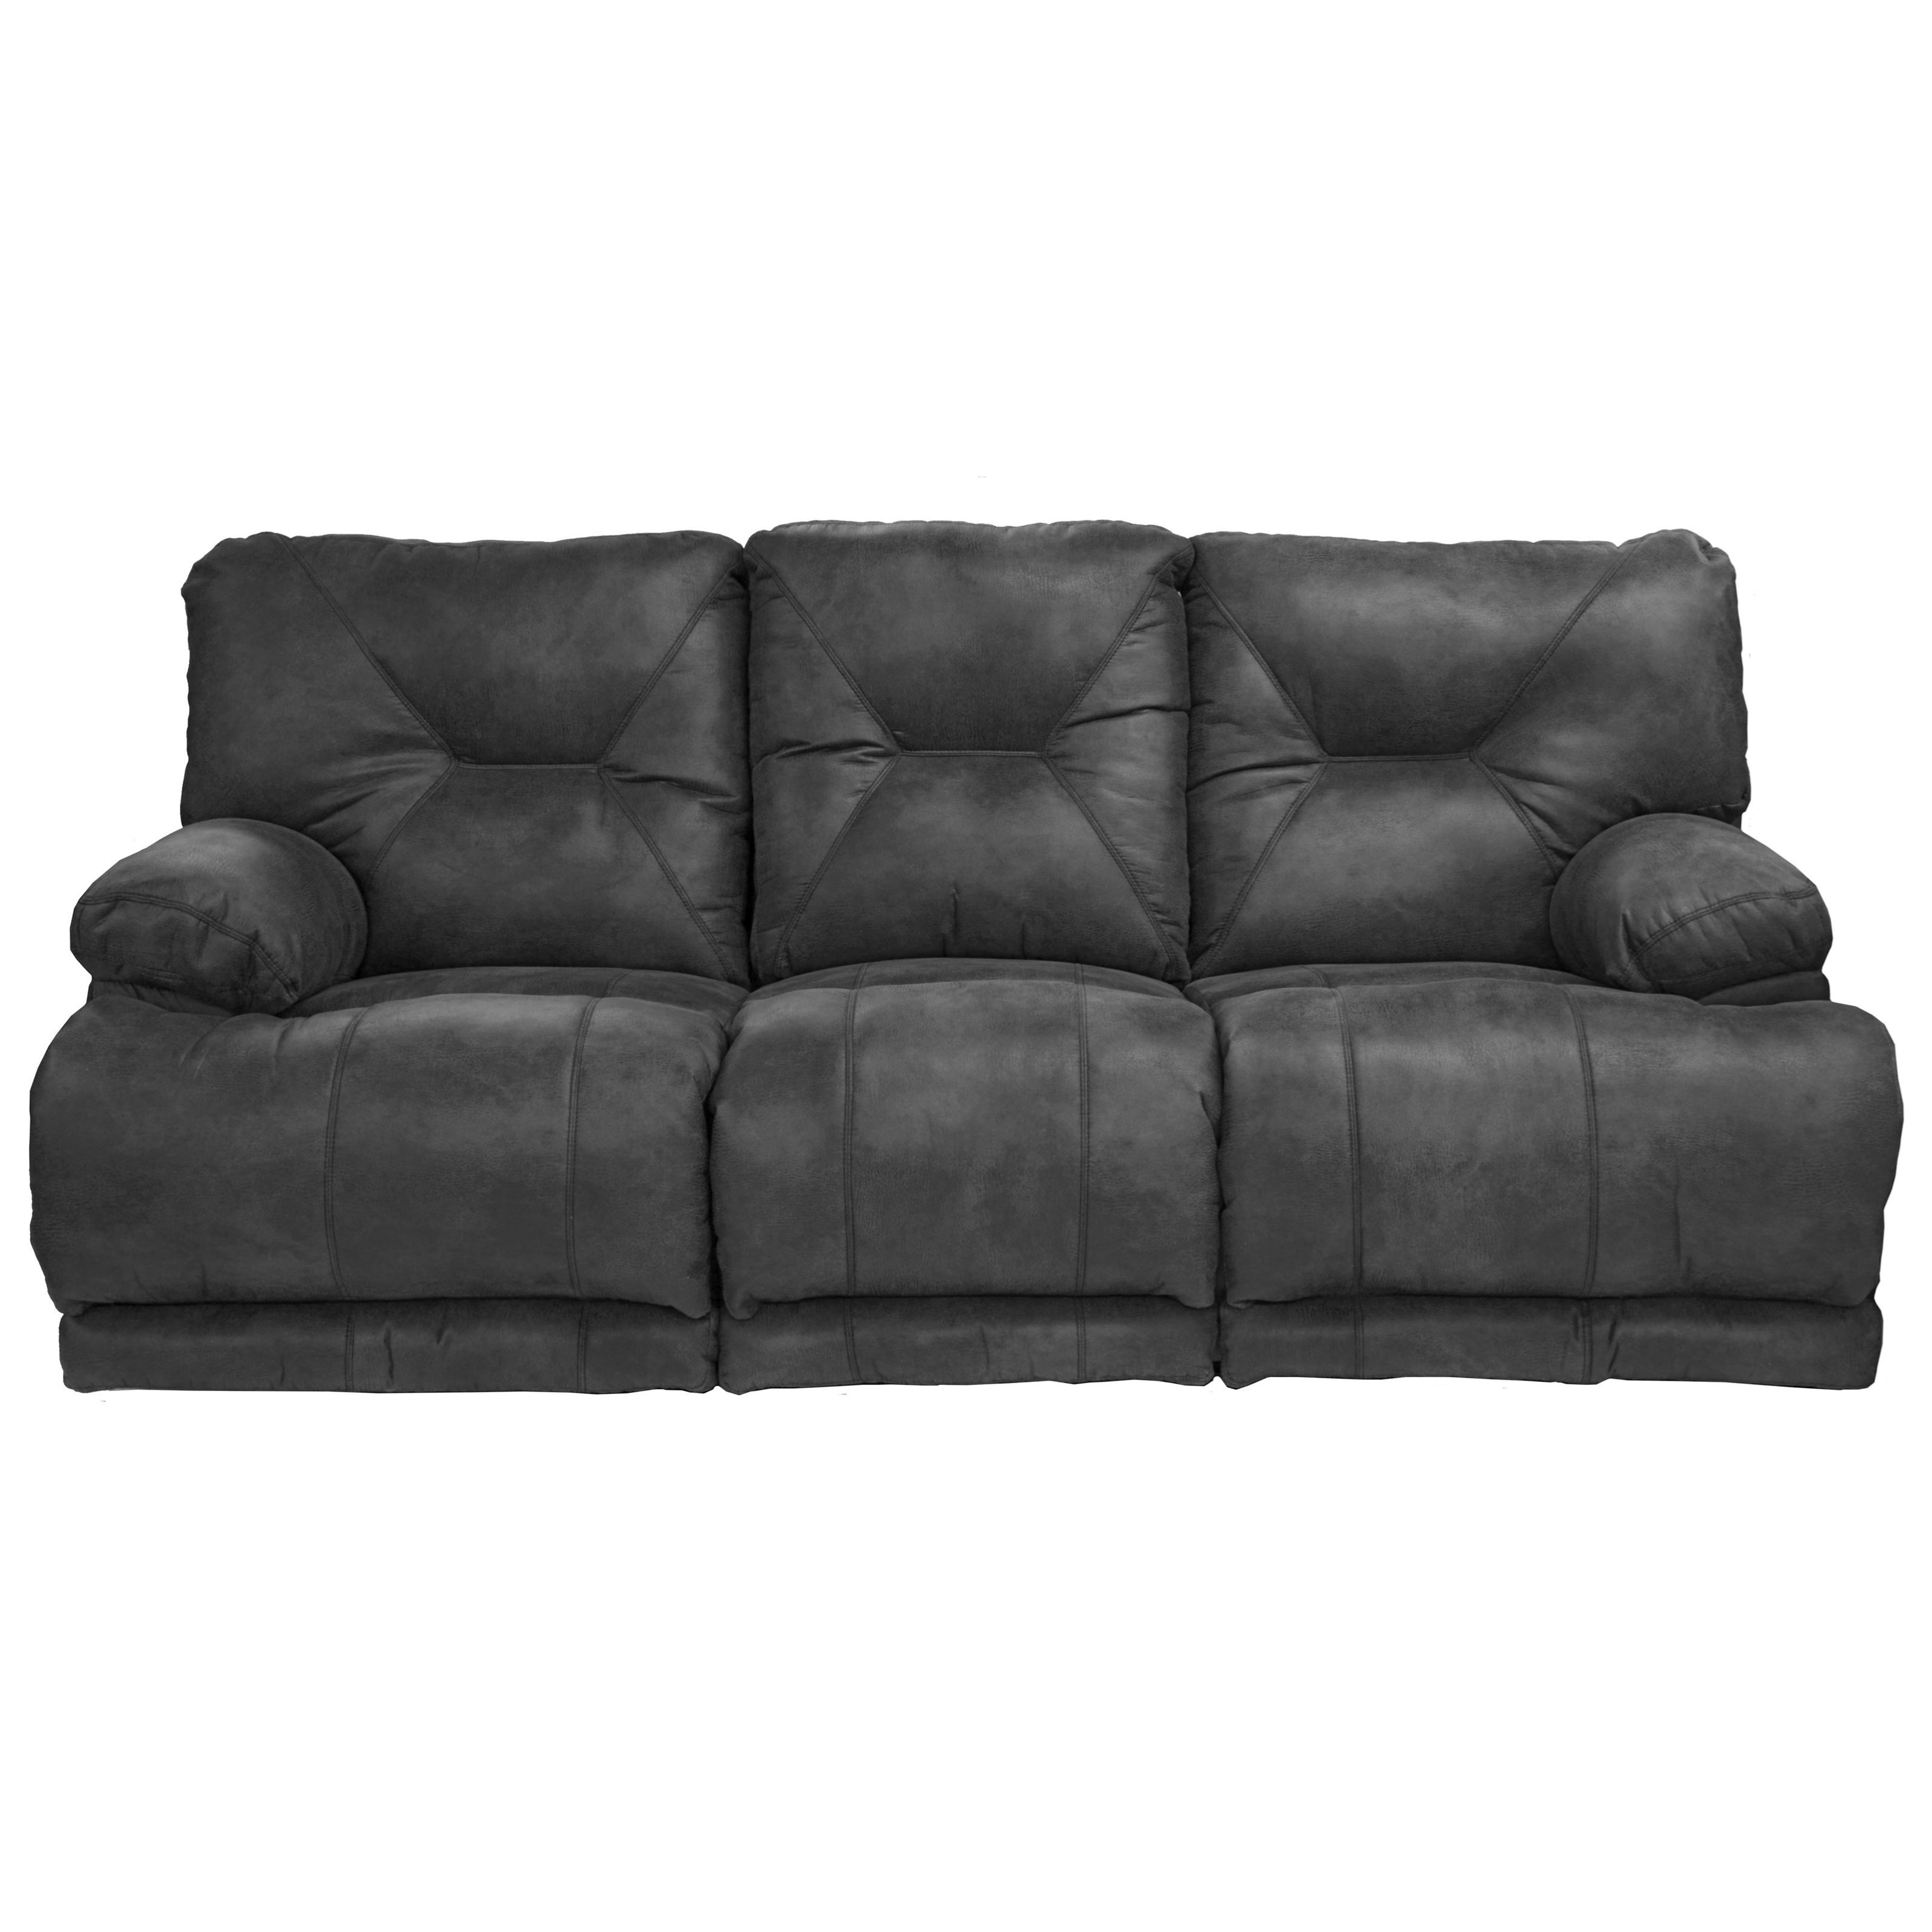 Lay Flat Reclining Sofa with Padded Arms